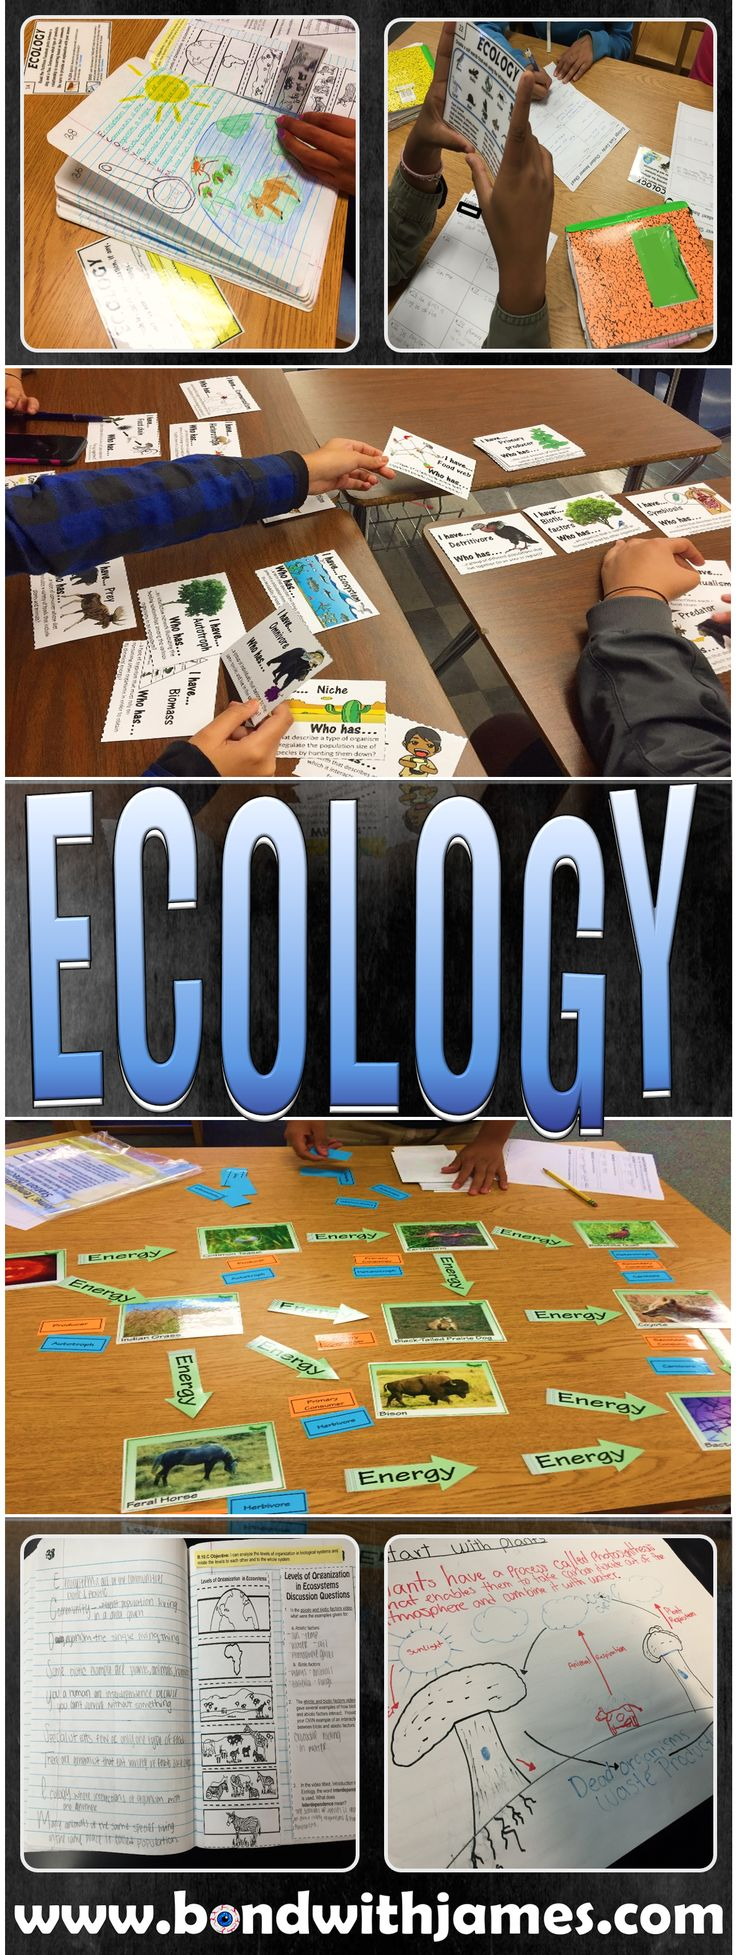 7 ideas and activities that I used during my ecology unit.